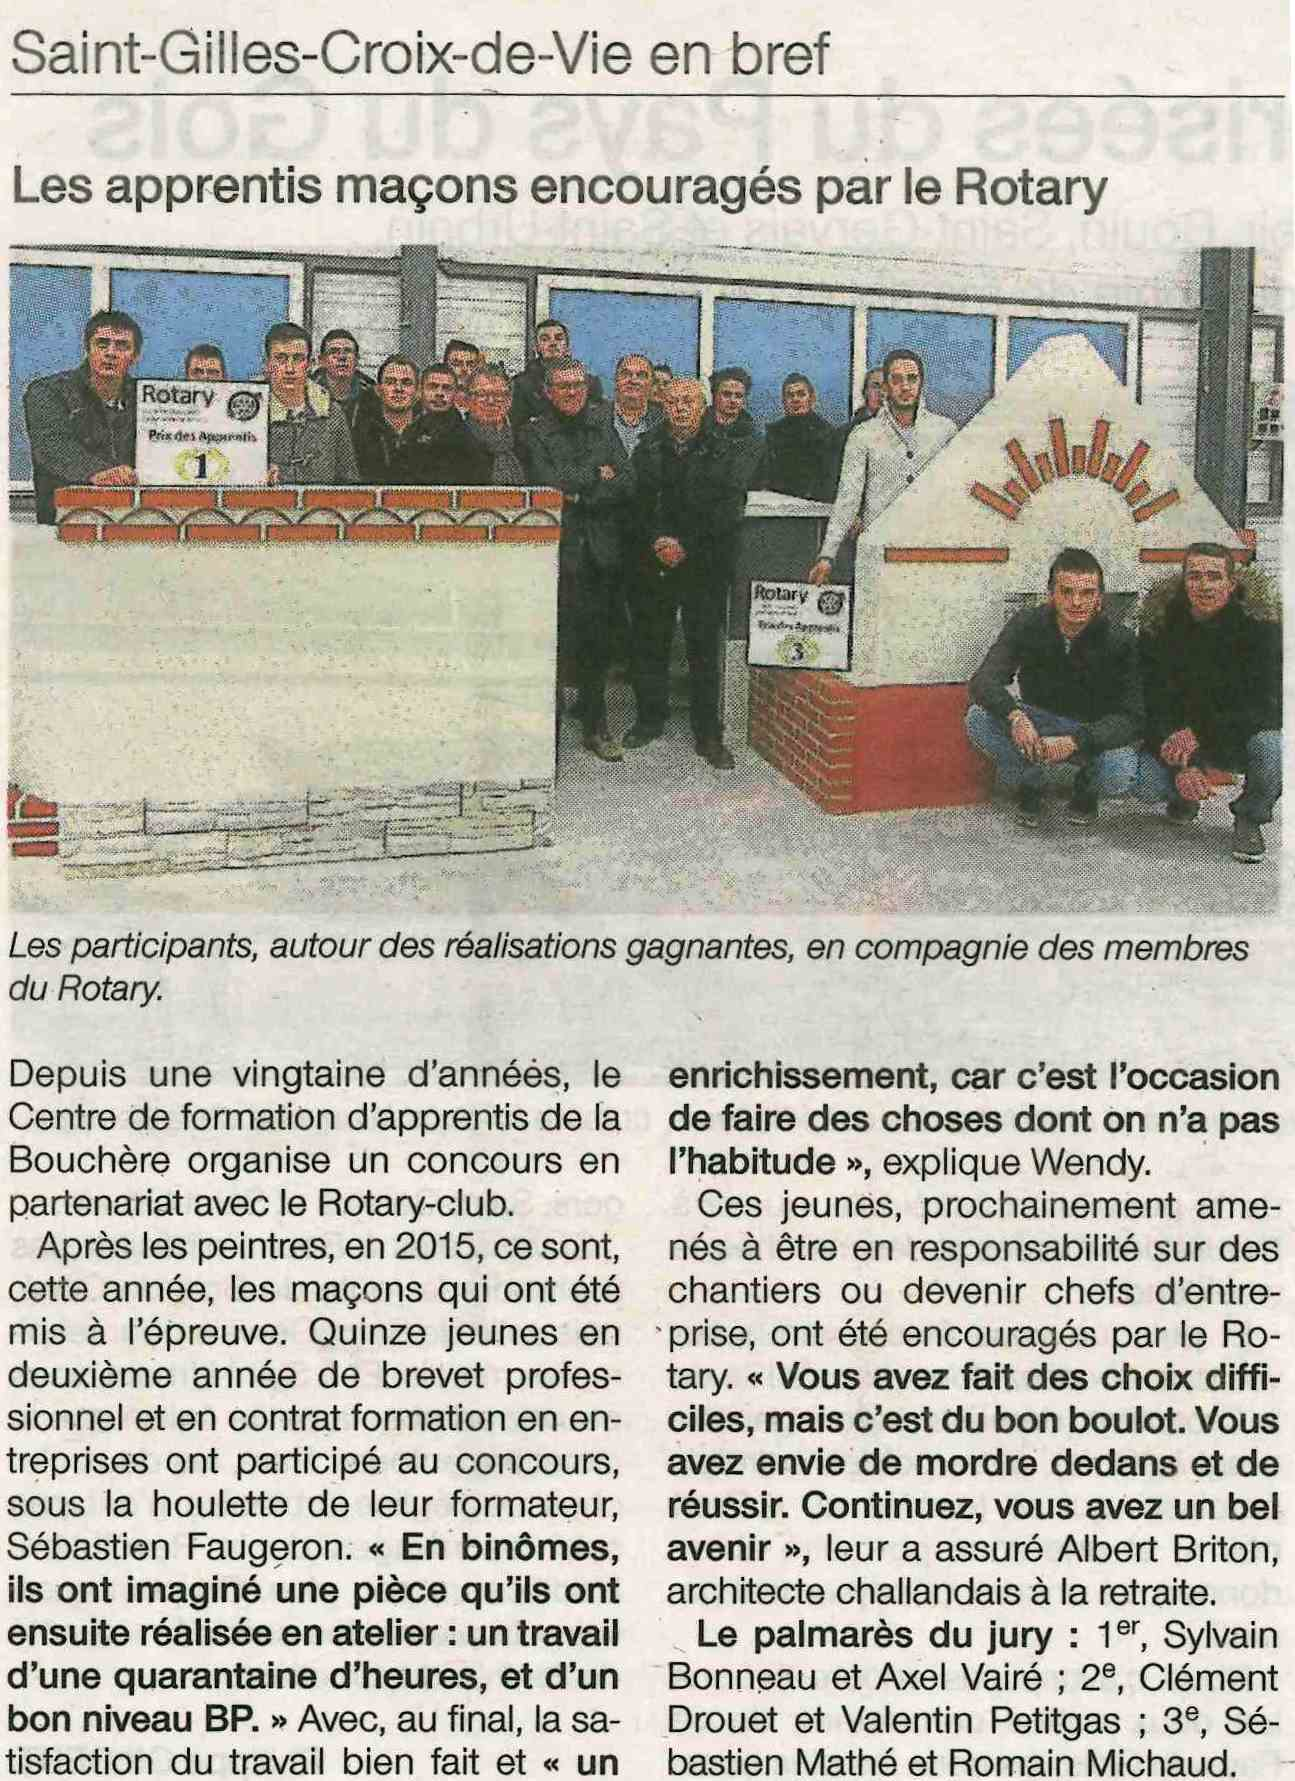 ouest france 31-01-16